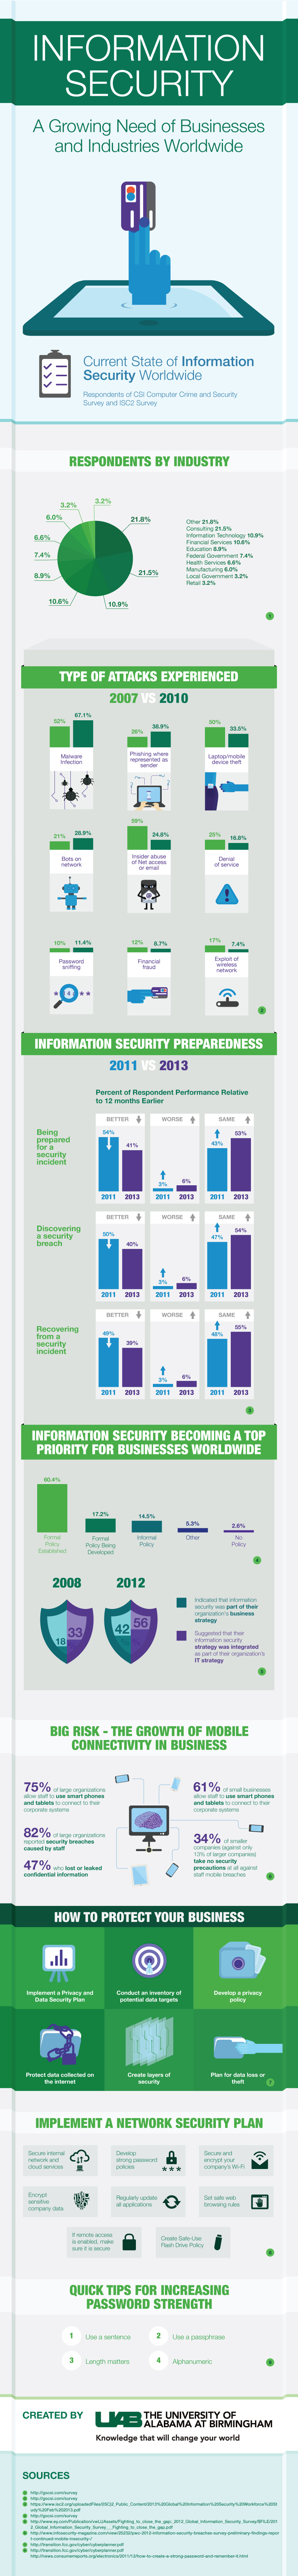 The importance of information security - Infographic